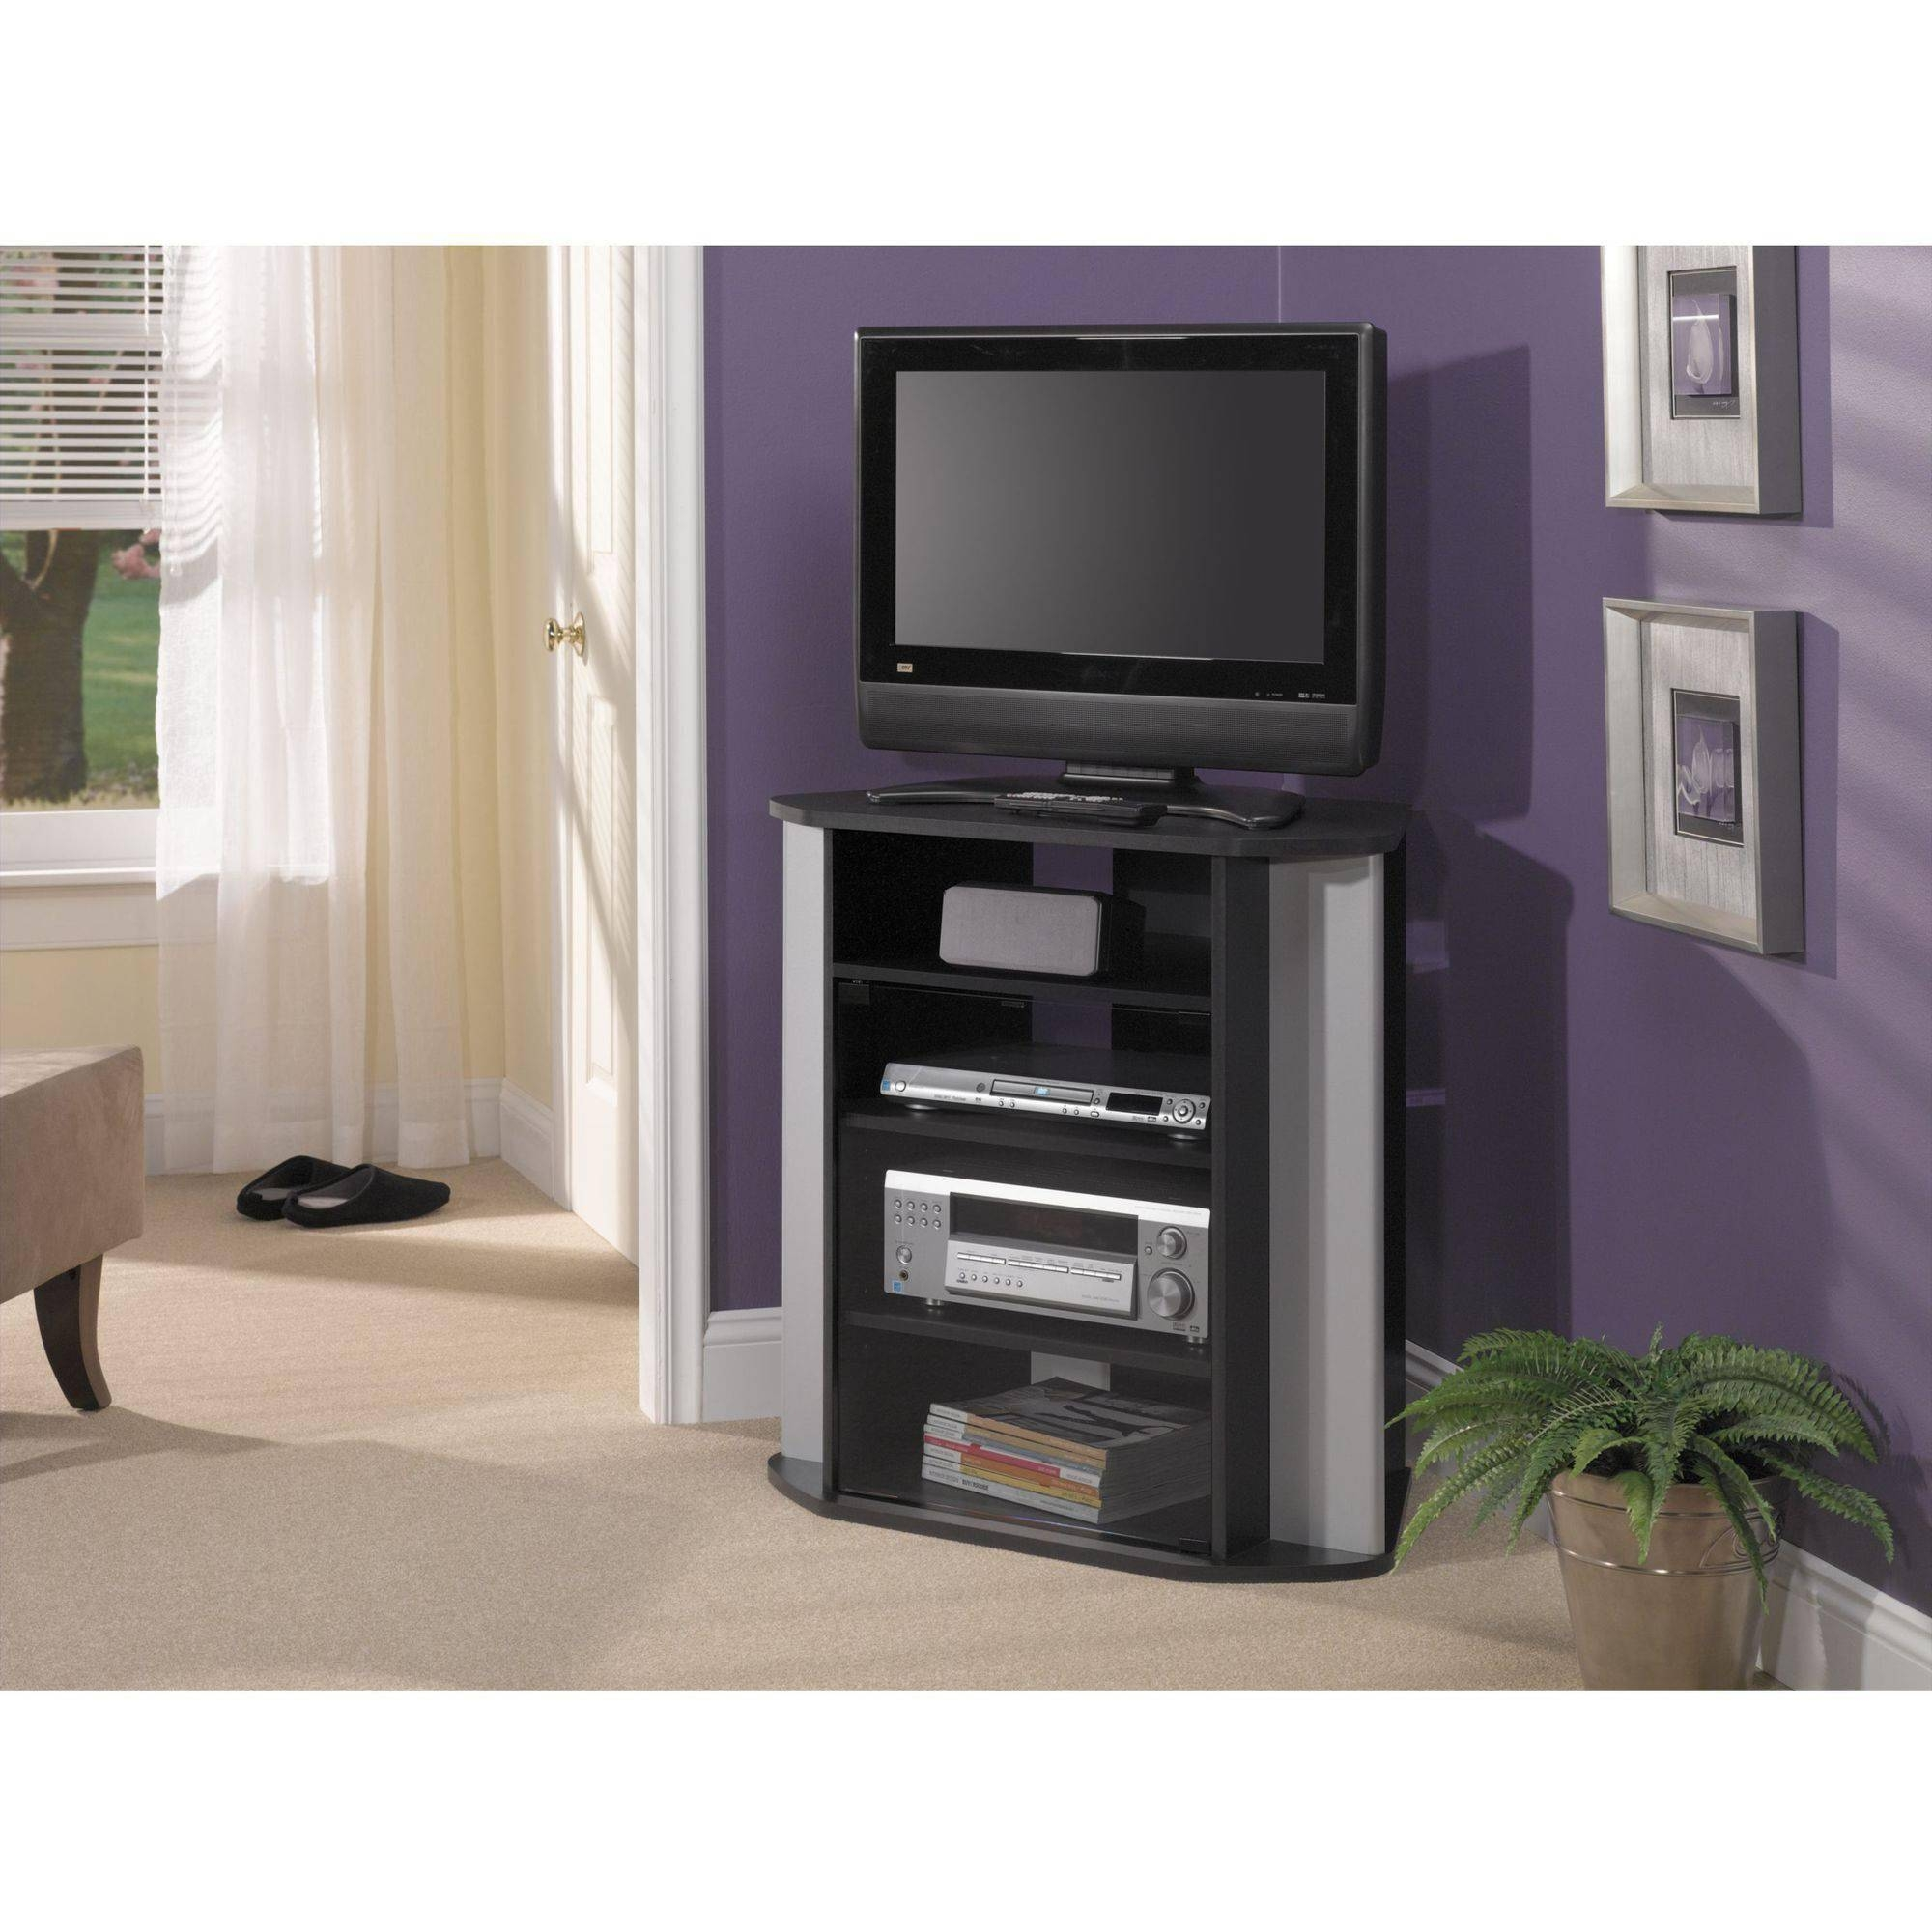 Tall Bedroom Tv Stand To Complete Your Room Decor Best Ideas Pertaining To Skinny Tv Stands (View 8 of 15)